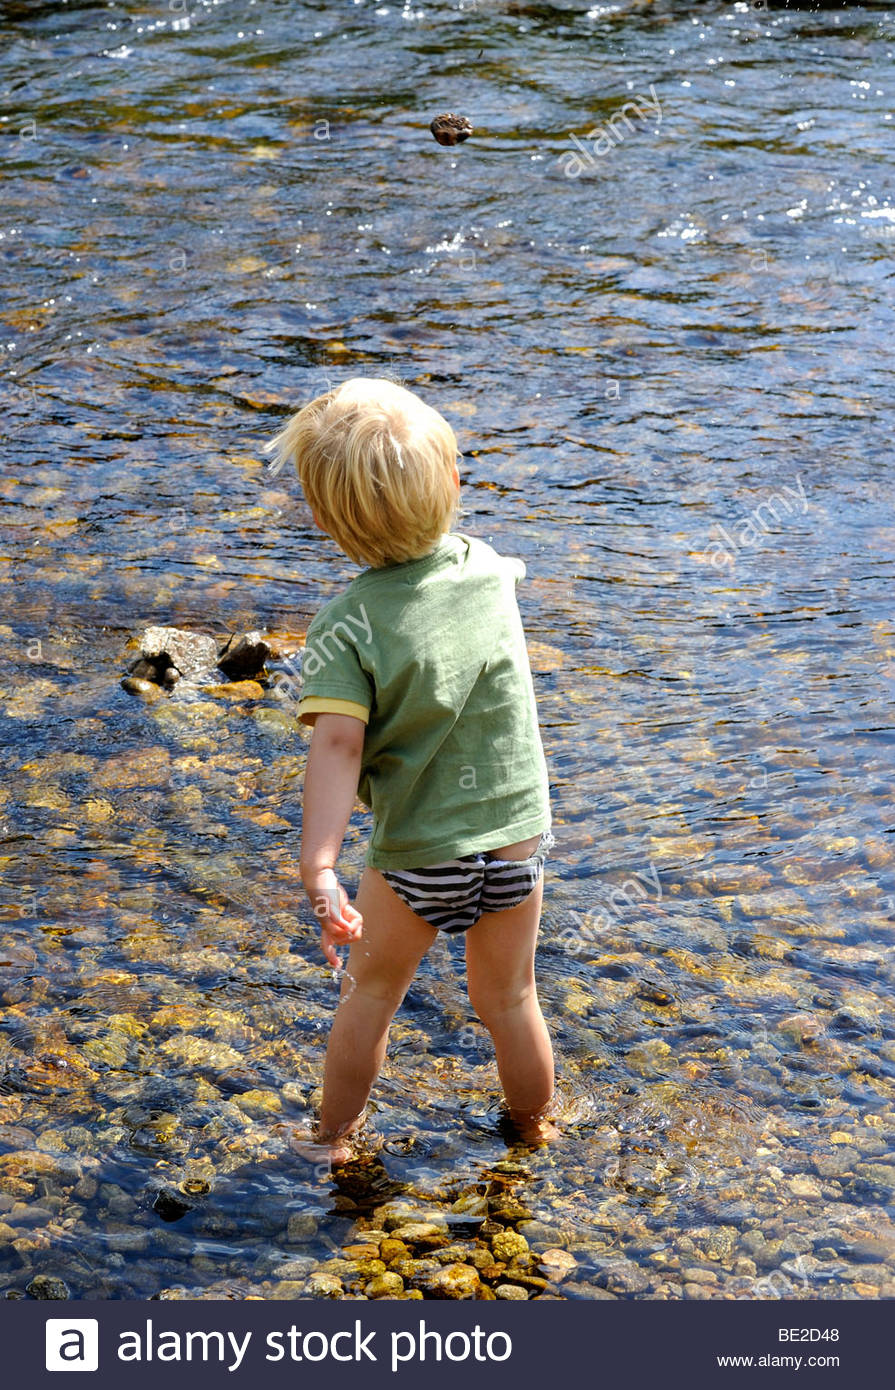 naked boy in river A young naked boy throwing stone into the river